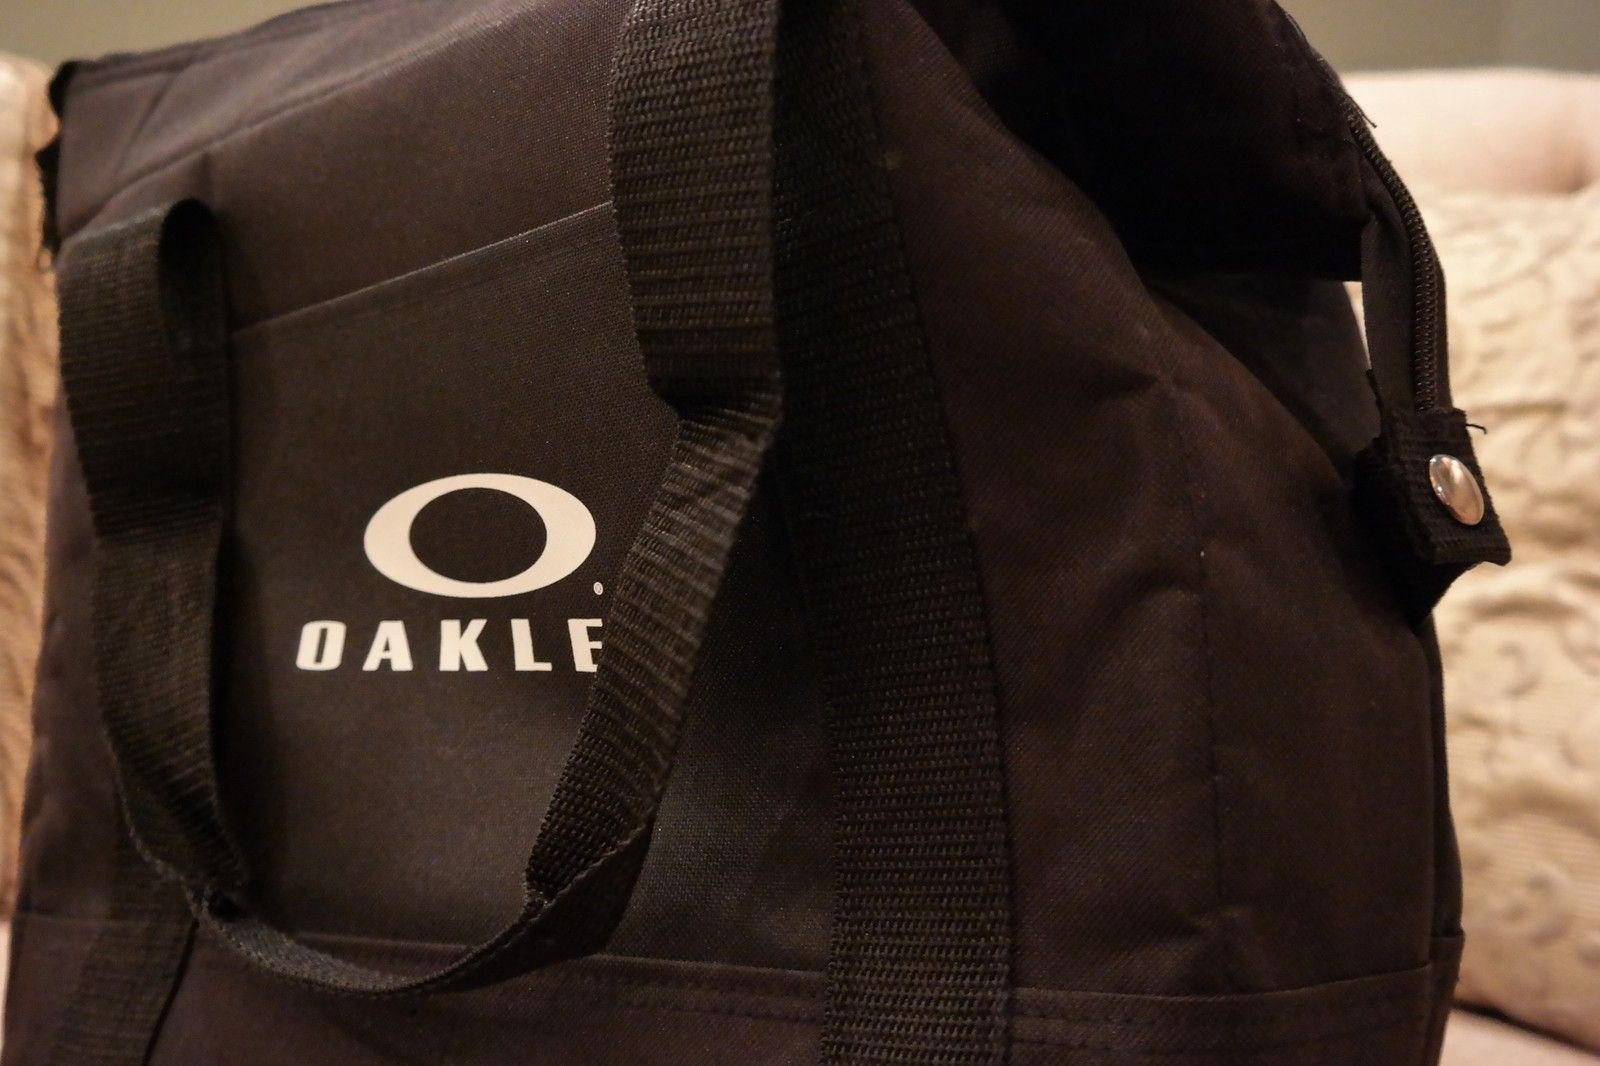 Want something you can't go out and buy?  OAKLEY V.I.P. polo, mf bag, golf balls and more. - SAM_1683.jpg